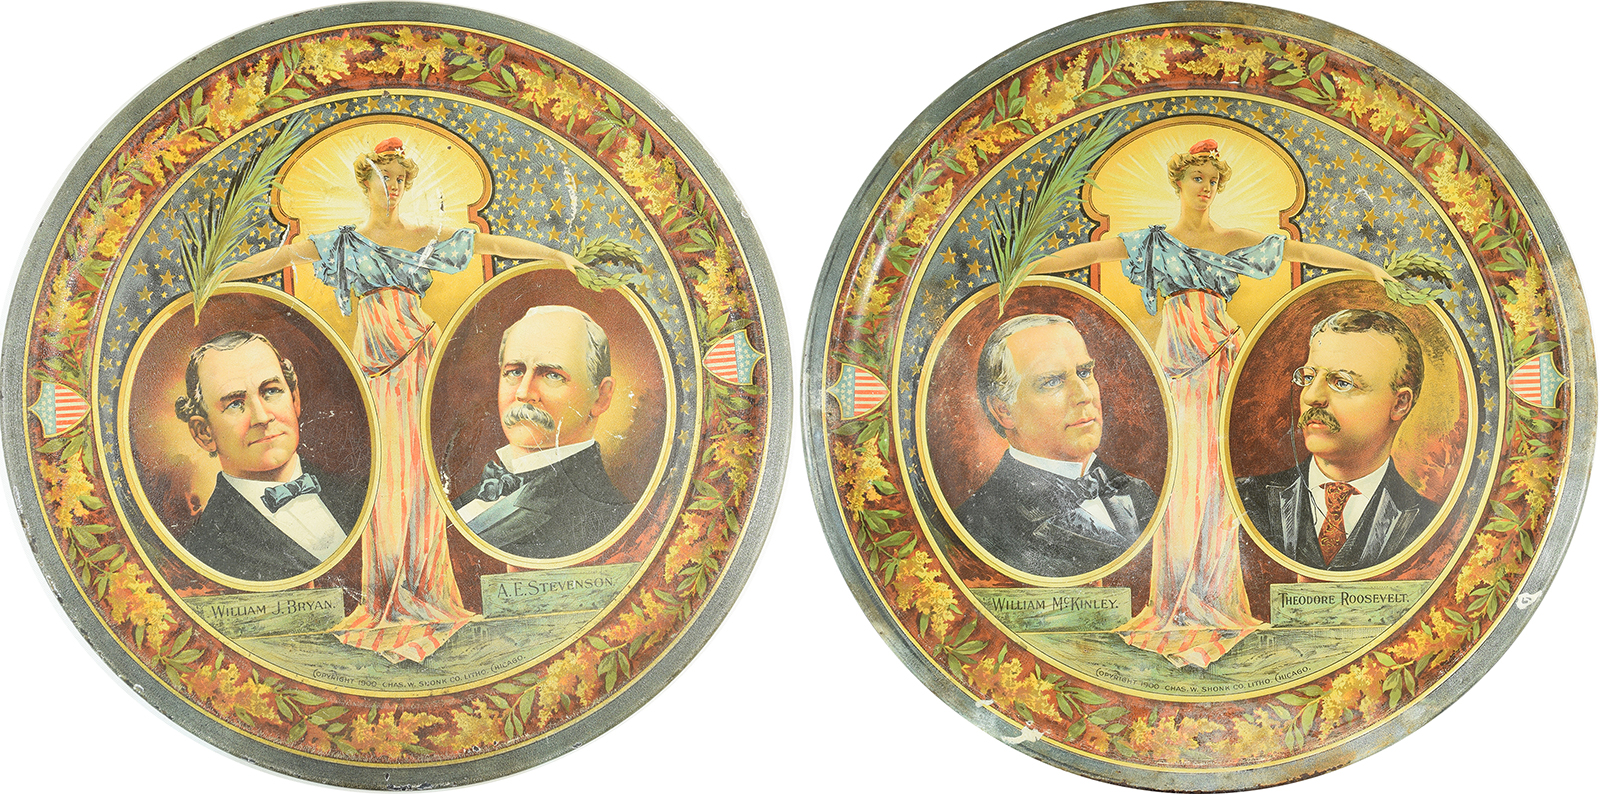 Other Collectibles 1900 PAIR OF GRAPHIC 12″ MCKINLEY & BRYAN TIN TRAYS-SCARCE VG+/EXC, MINOR FLAWS